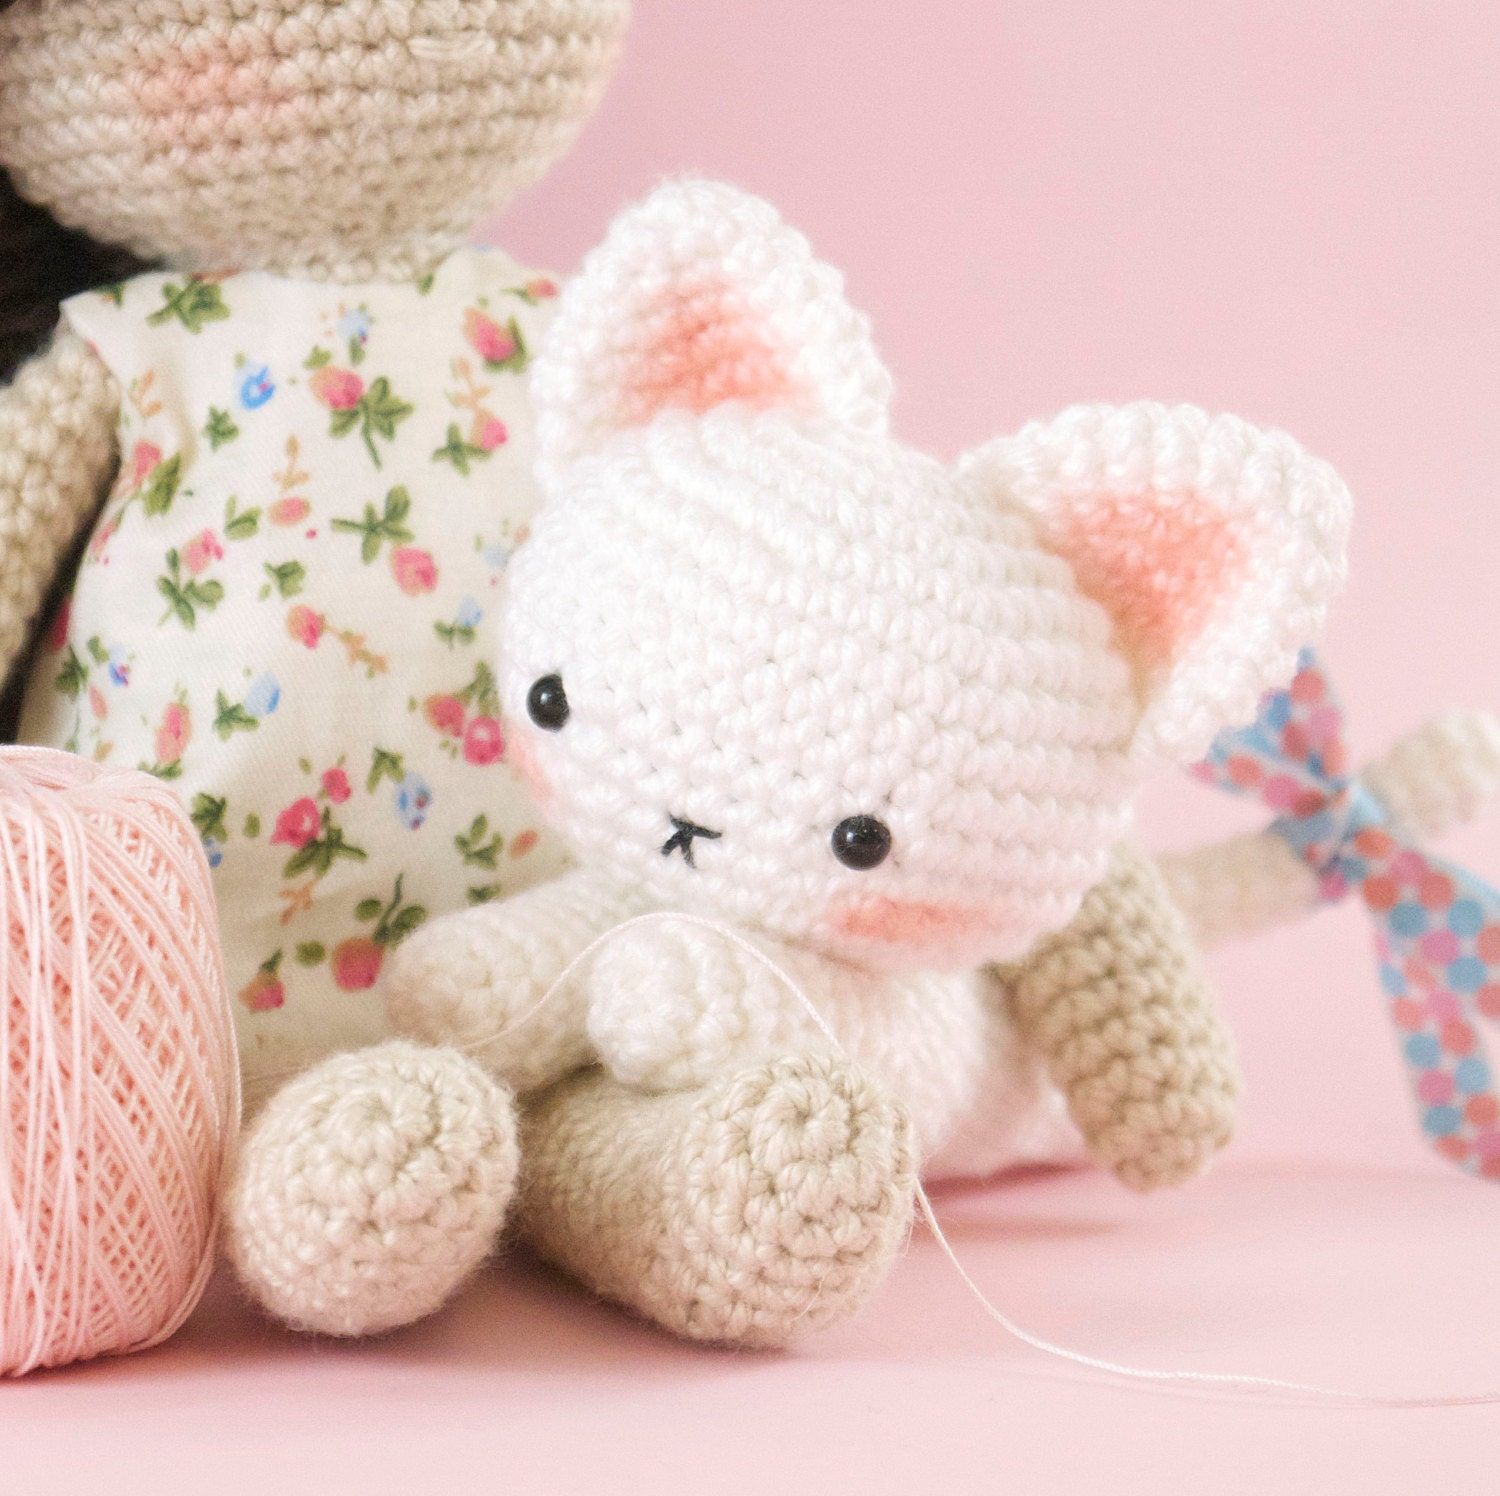 Crochet Patterns English : Amigurumi crochet cat PATTERN ONLY (English) - Zeppy.io